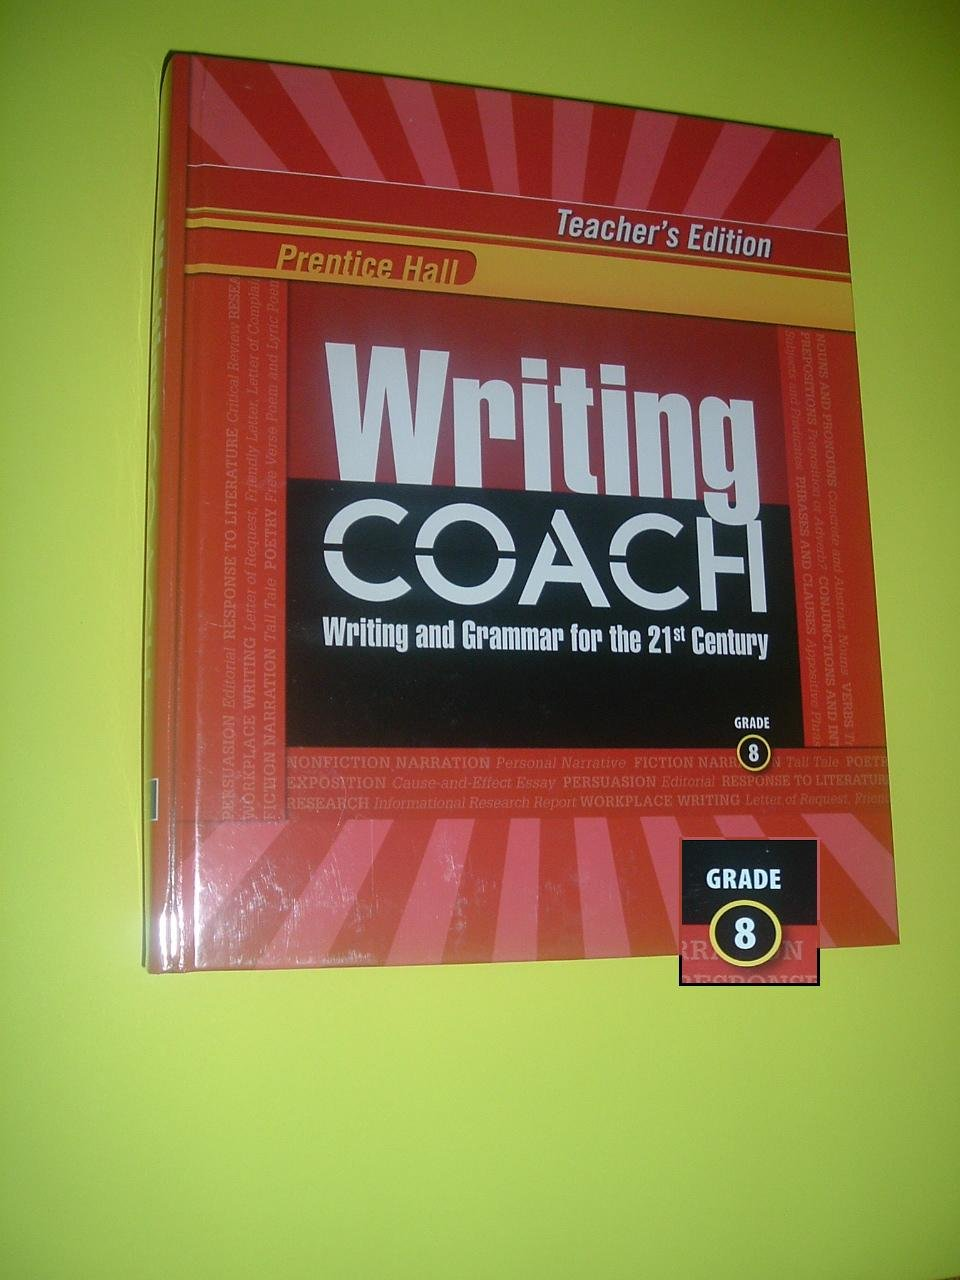 Writing Coach Writing and Grammar for the 21st Century - Grade 8 Teacher's Edition, Prentice Hall ebook